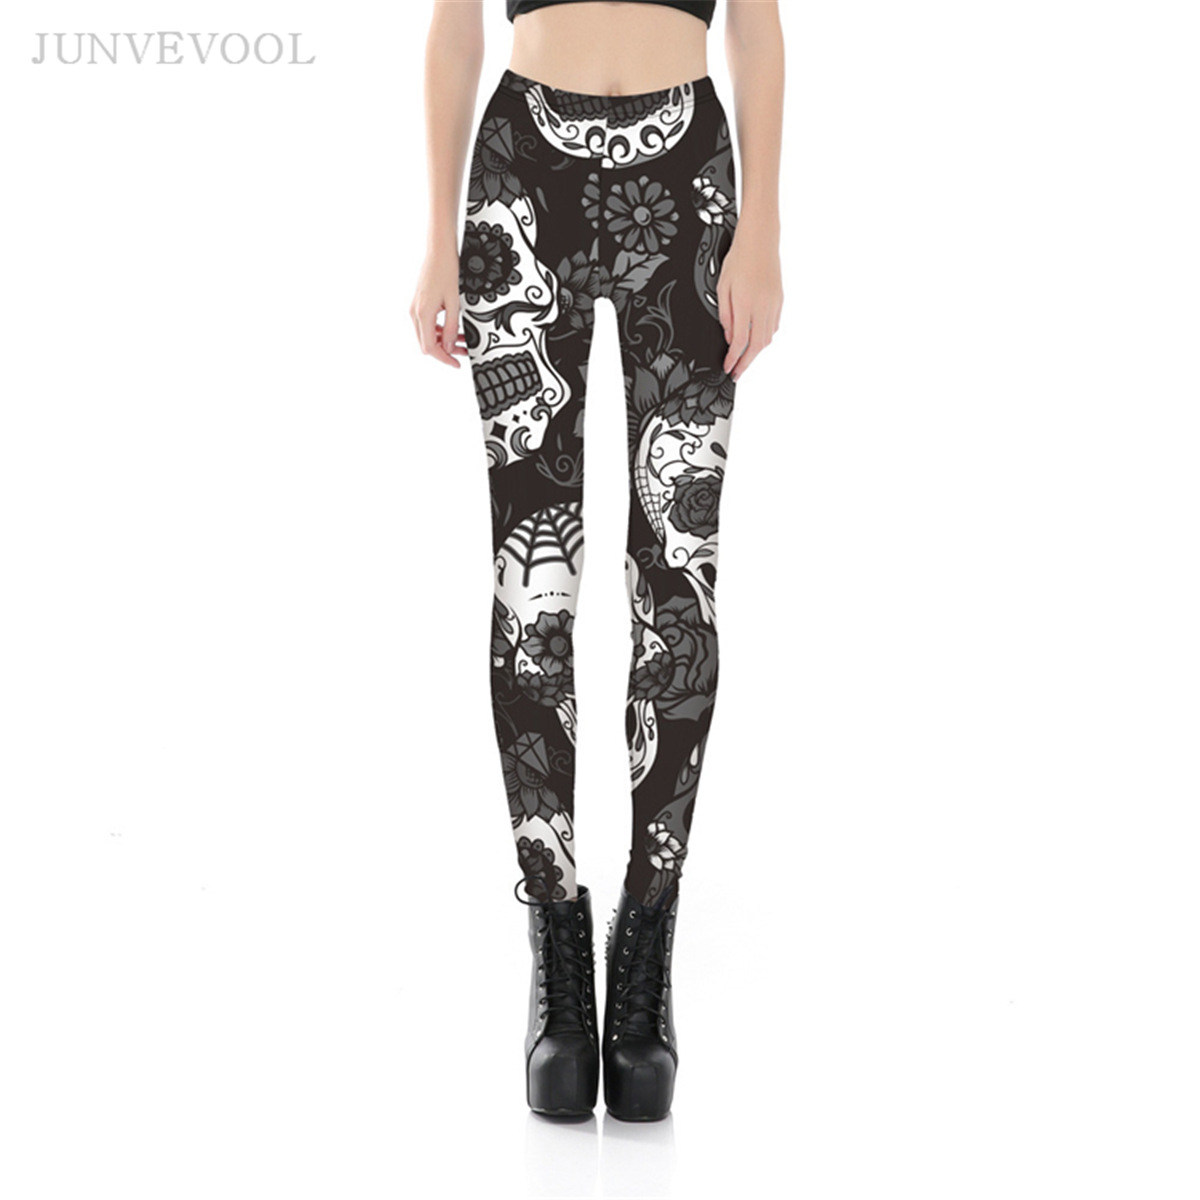 Leggings Bodycon <font><b>Women</b></font> <font><b>Halloween</b></font> Day <font><b>SEXY</b></font> Fitness Crop Ghost Rose Skull Styles Digital Printed Trousers Legging Workout Exercise image